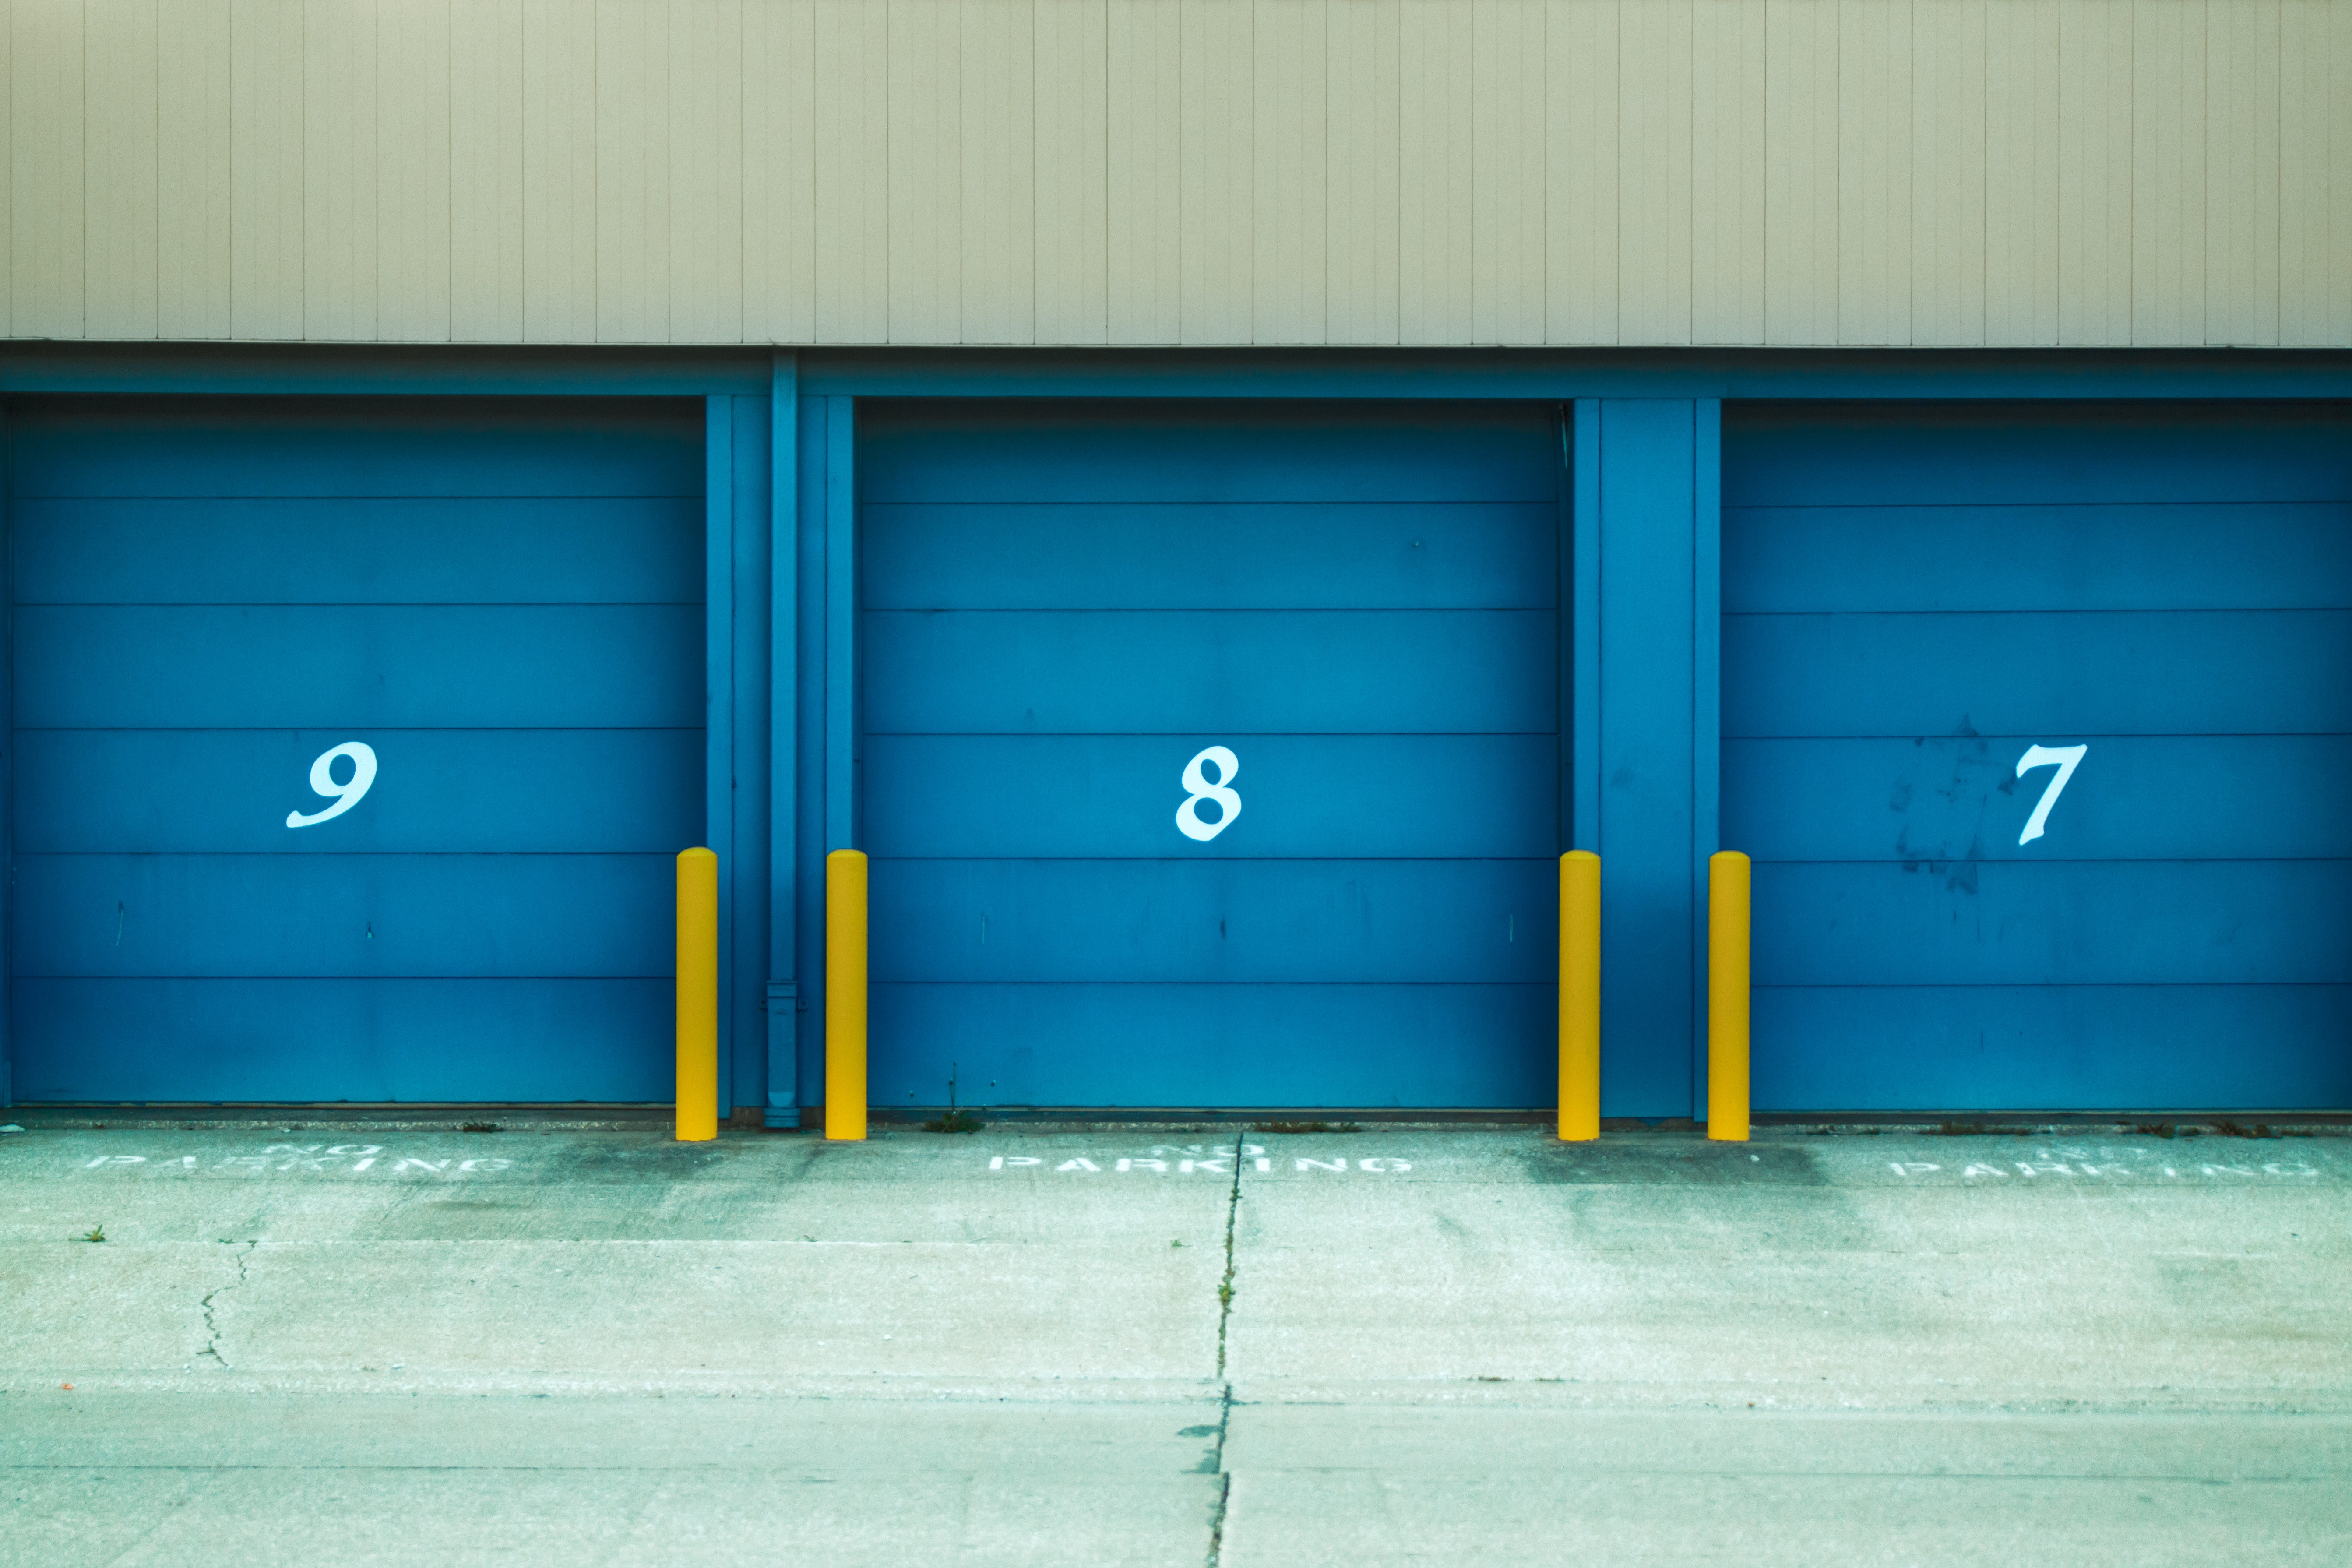 Restricted items in storage facilities